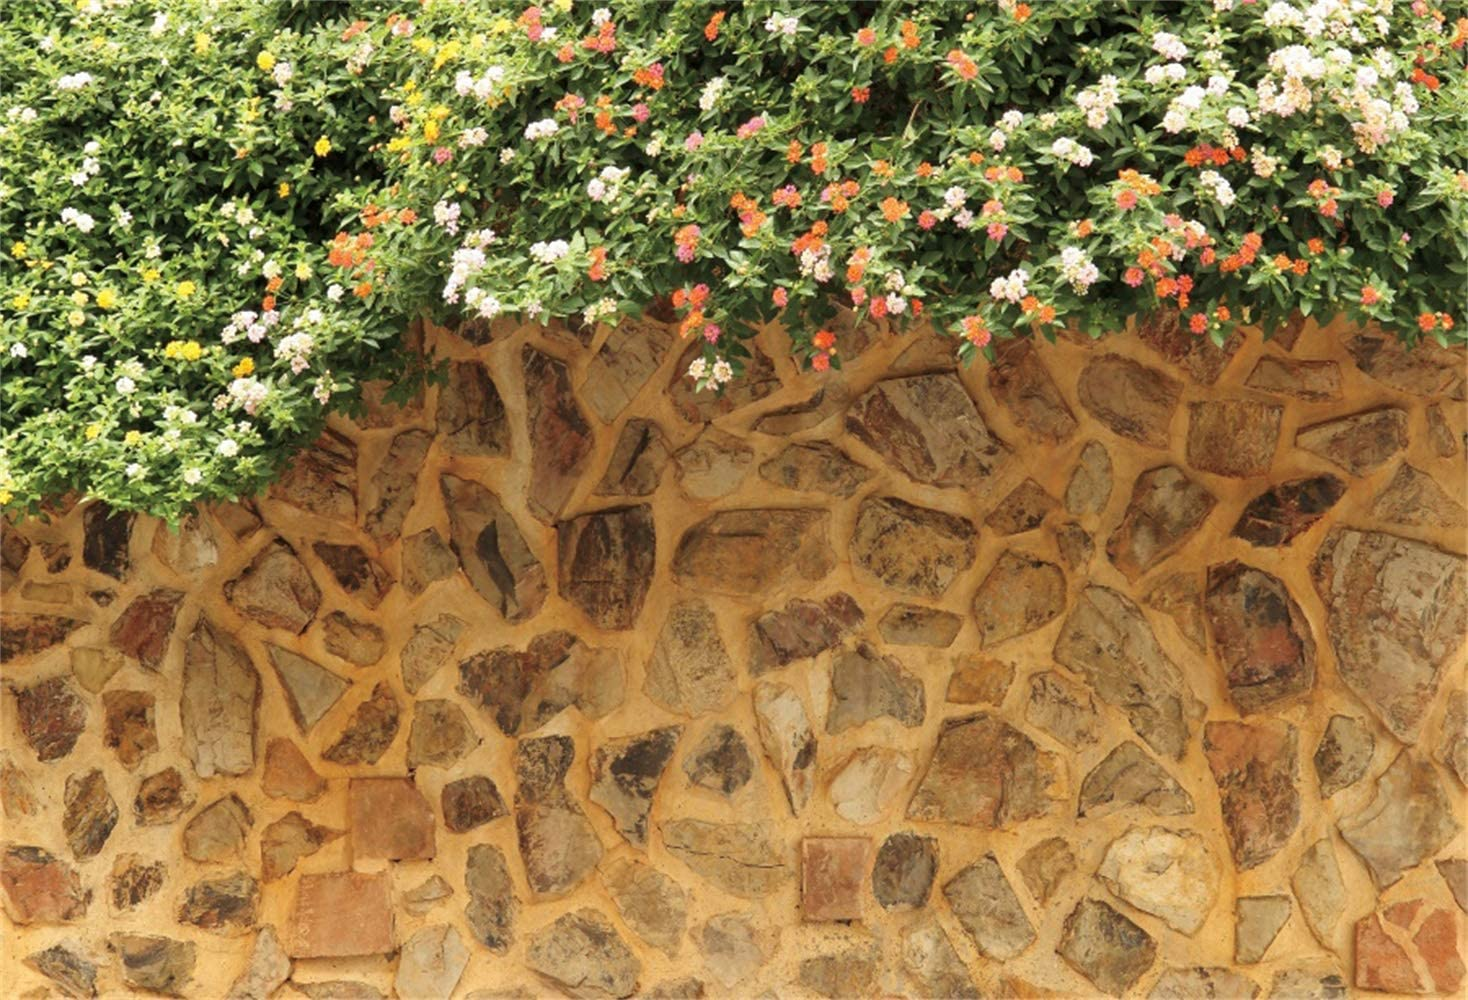 Leowefowa 12x8ft Spring Garden Rustic Stone Wall Blooming Florets/Backdrop Vinyl Photography Background Nature Landscape Child Adult Photo Shoot Event Activities Photo Booth Party Decor Wallpaper